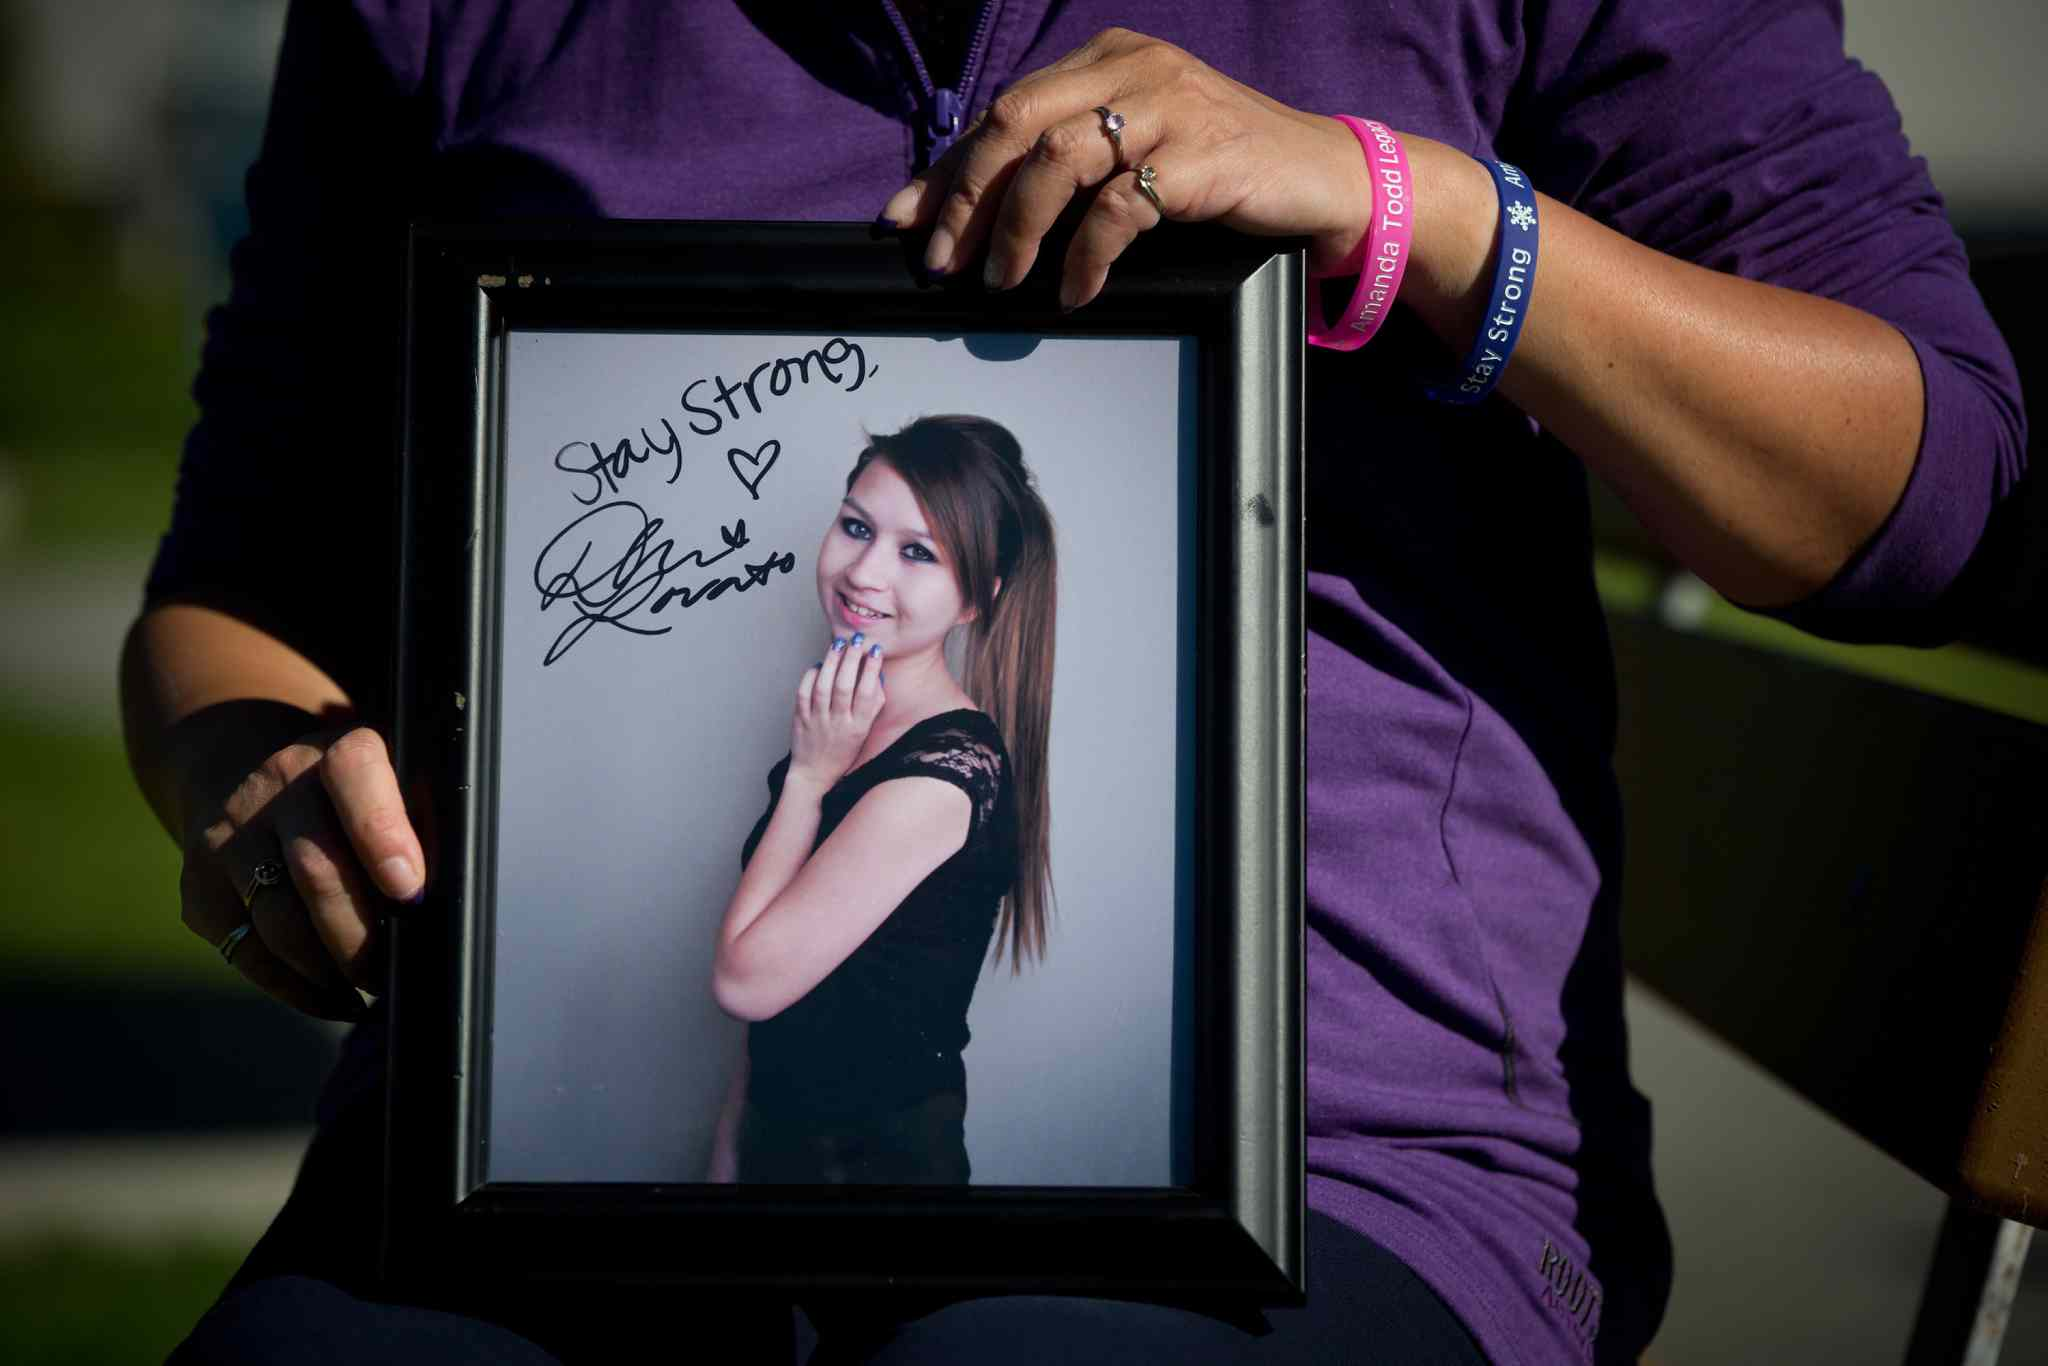 Carol Todd holds a photo of her late daughter, Amanda Todd, signed by singer Demi Lovato with the words 'Stay Strong.'